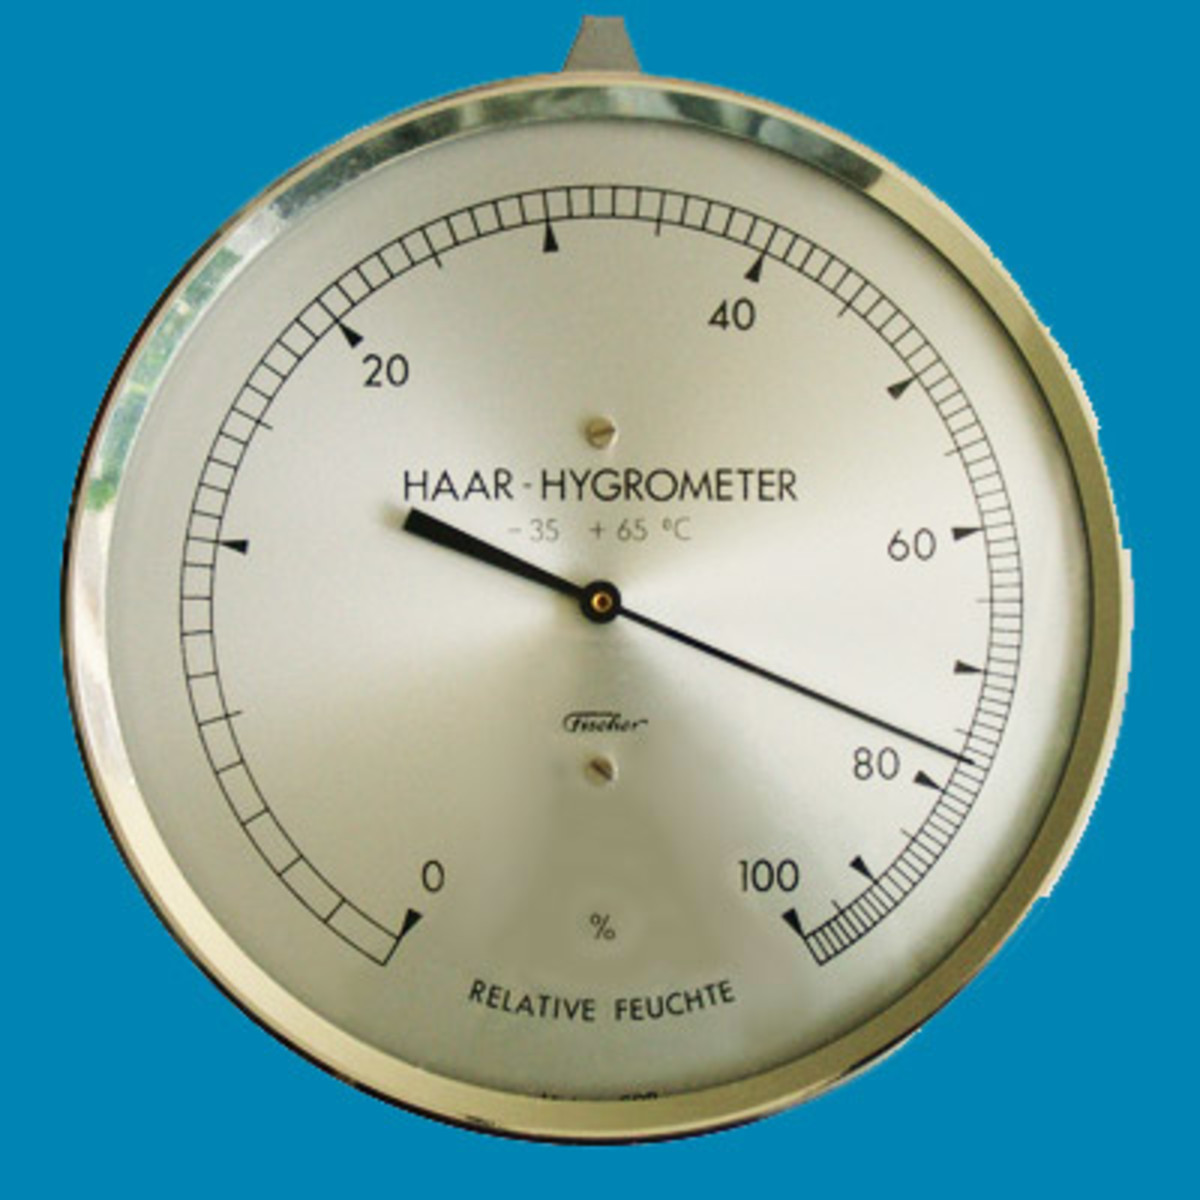 Humidity Meters (Hygrometers) - Types and Uses